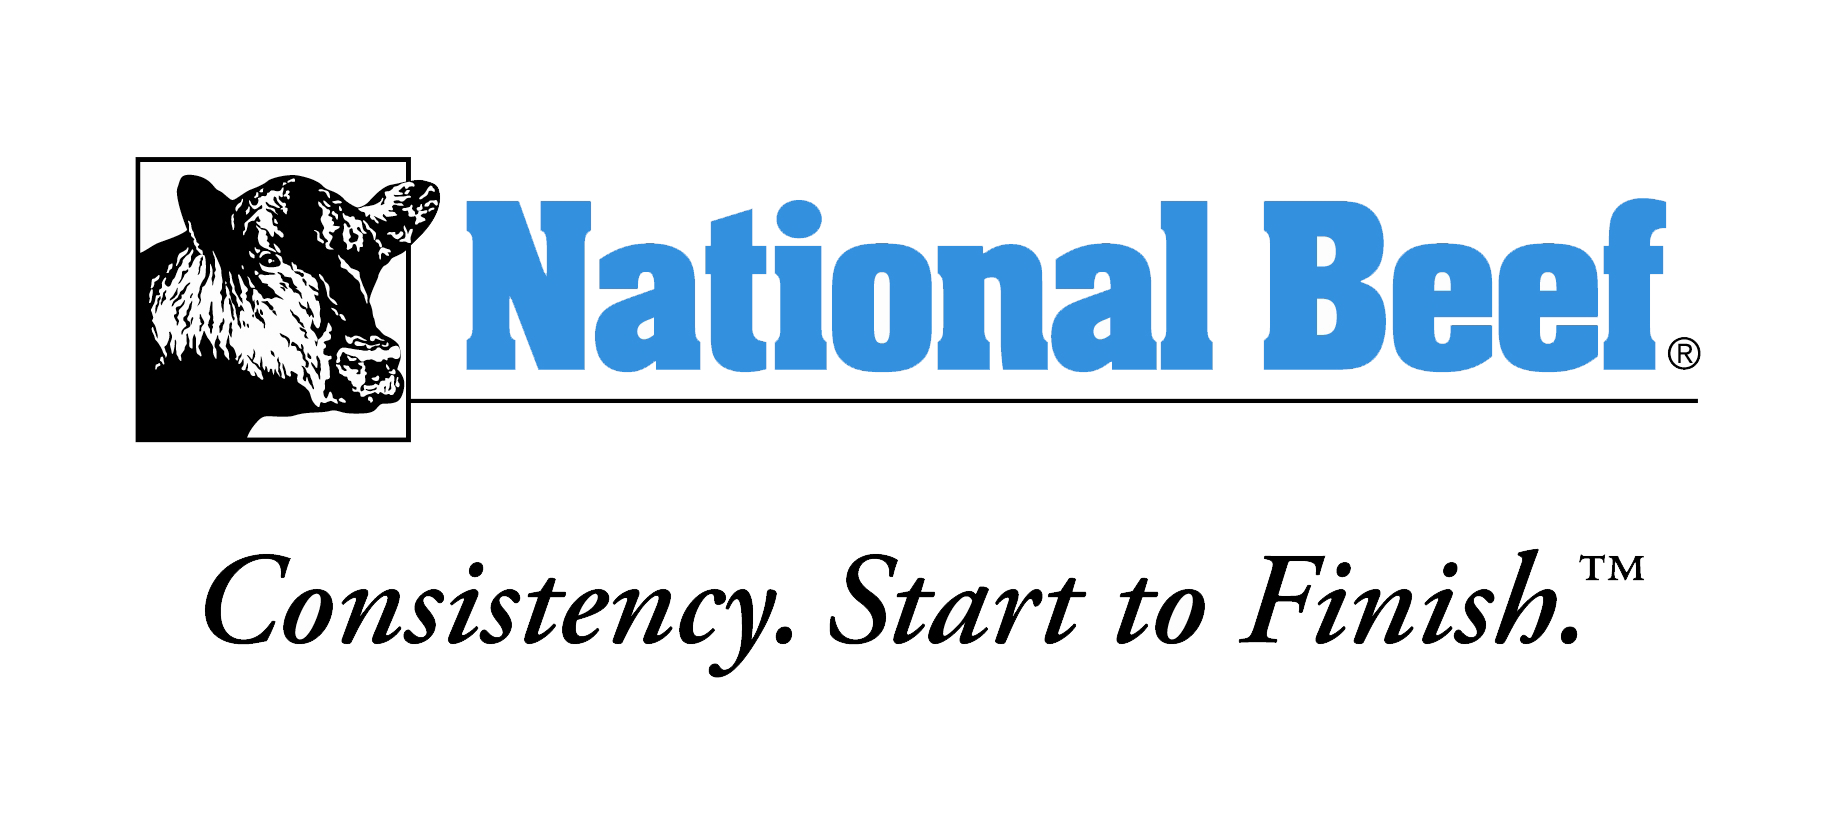 National-Beef-logo-2013.png